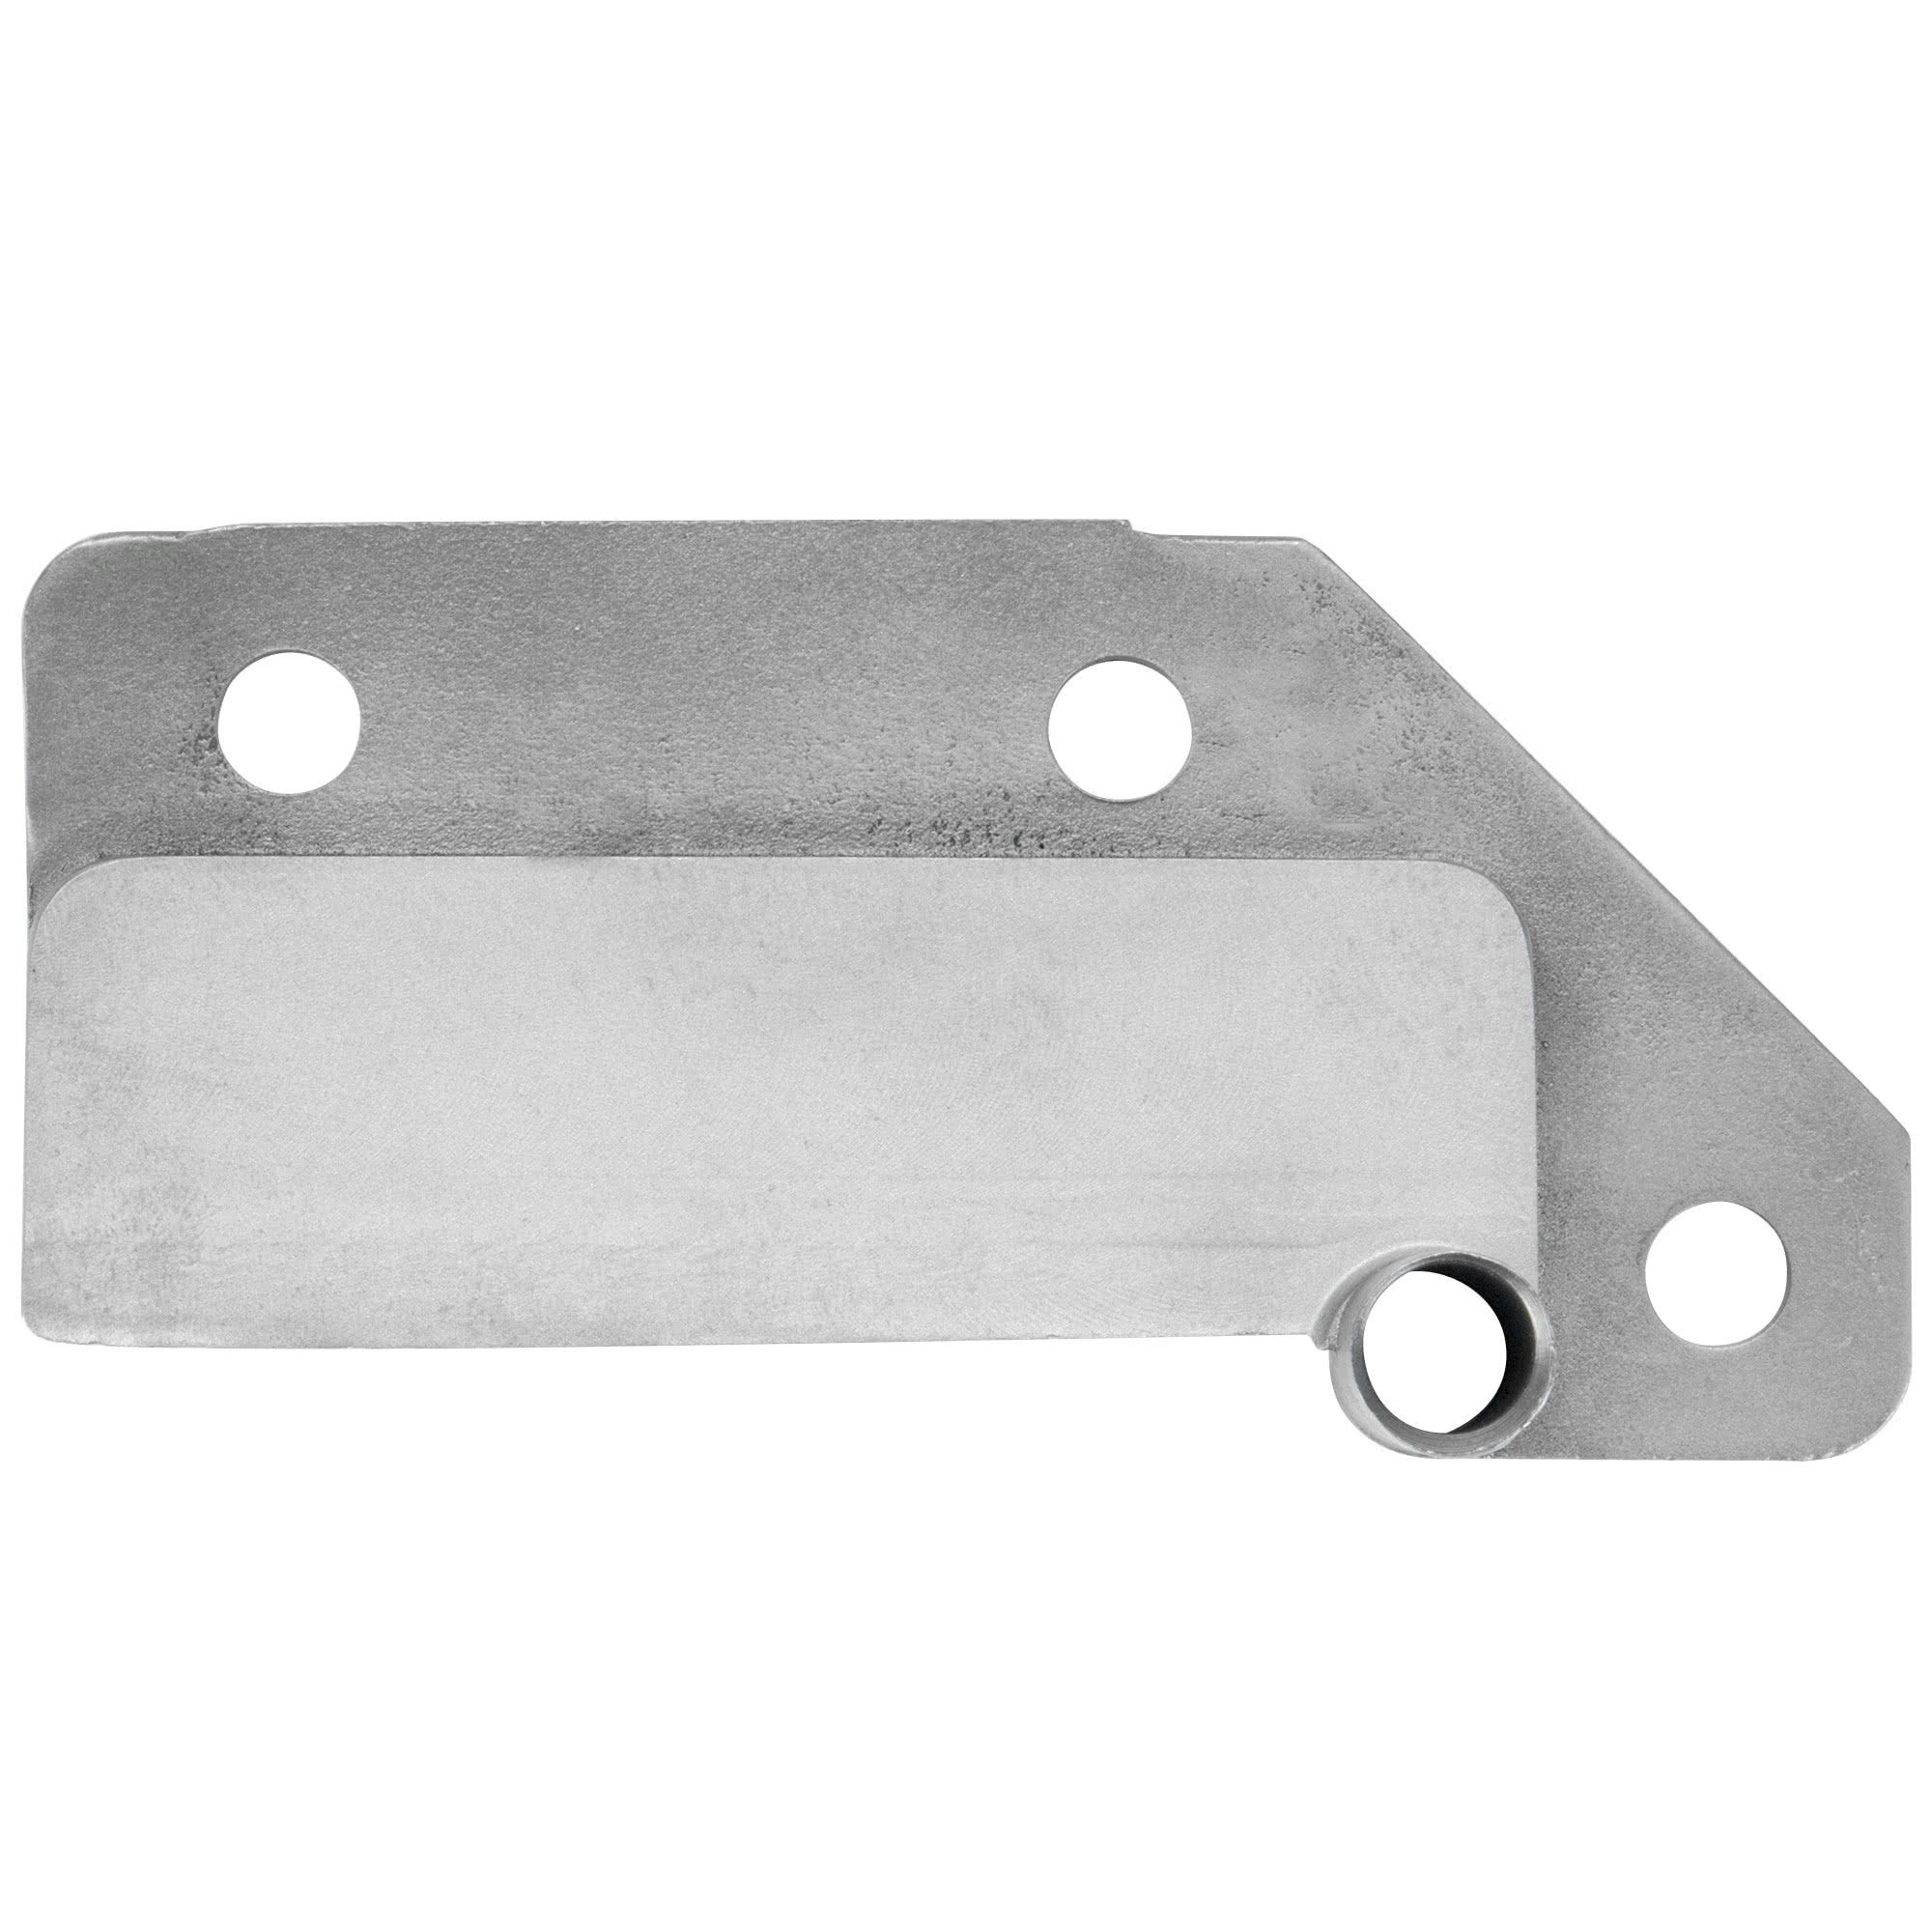 Nemco 55492 Replacement Shearing Blade for N55150A-R, N55150A-RS, and N55050AN-R